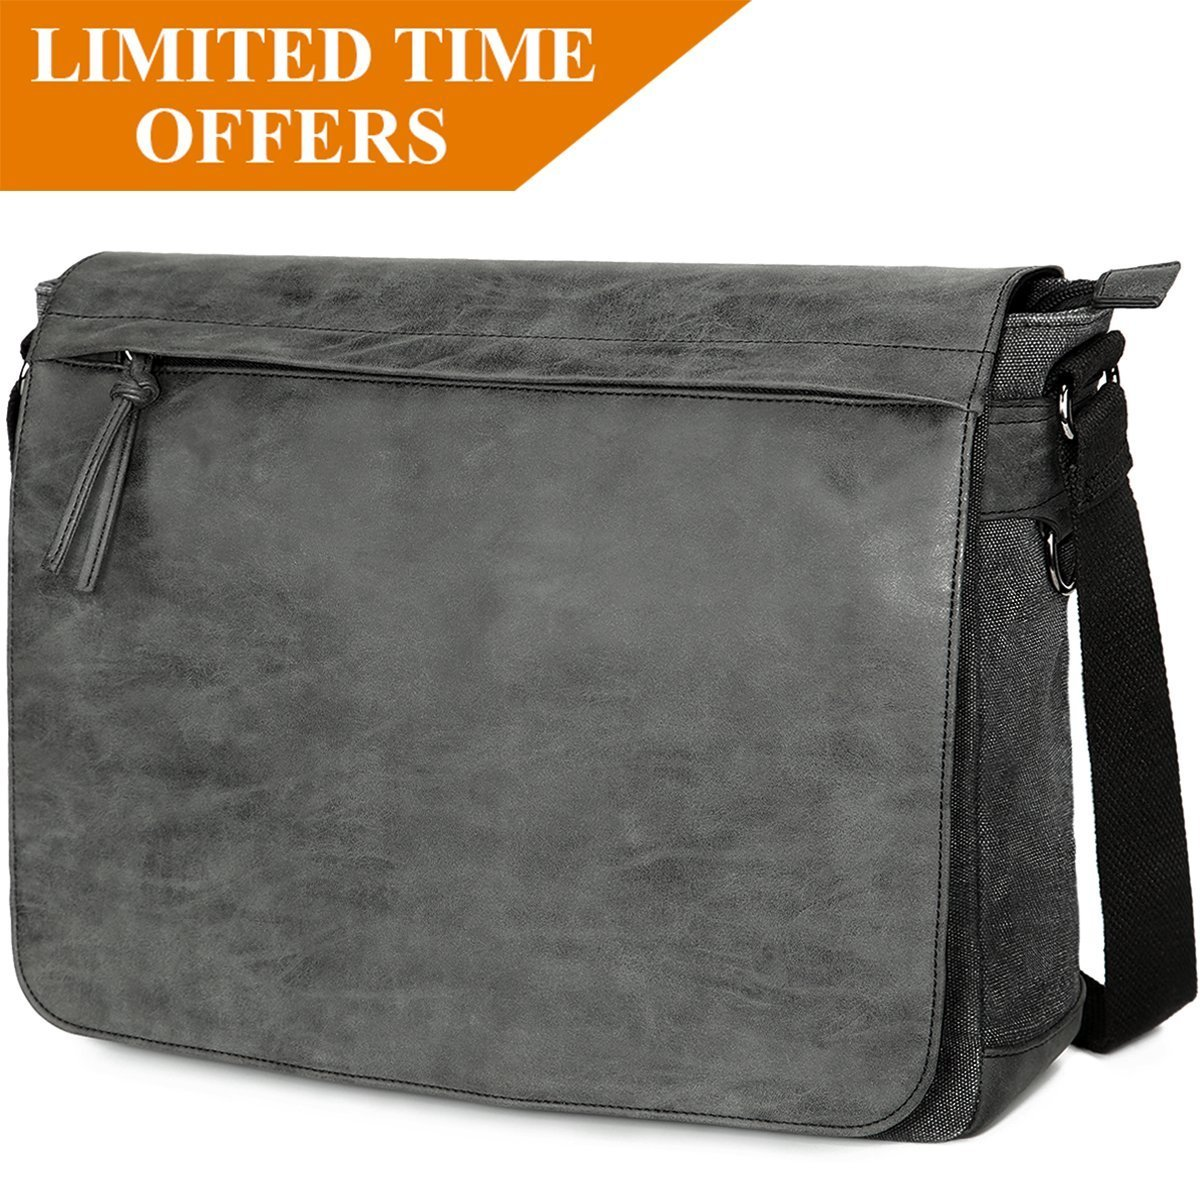 "Mens Laptop Messenger Bags 15.6"" Water Resistant Shoulder Bag Tocode PU Leather Canvas Satchel Crossbody Bags Brifecase Office Bag Large Computer Bag for Work College School Travel, Black TD-1032-Black"